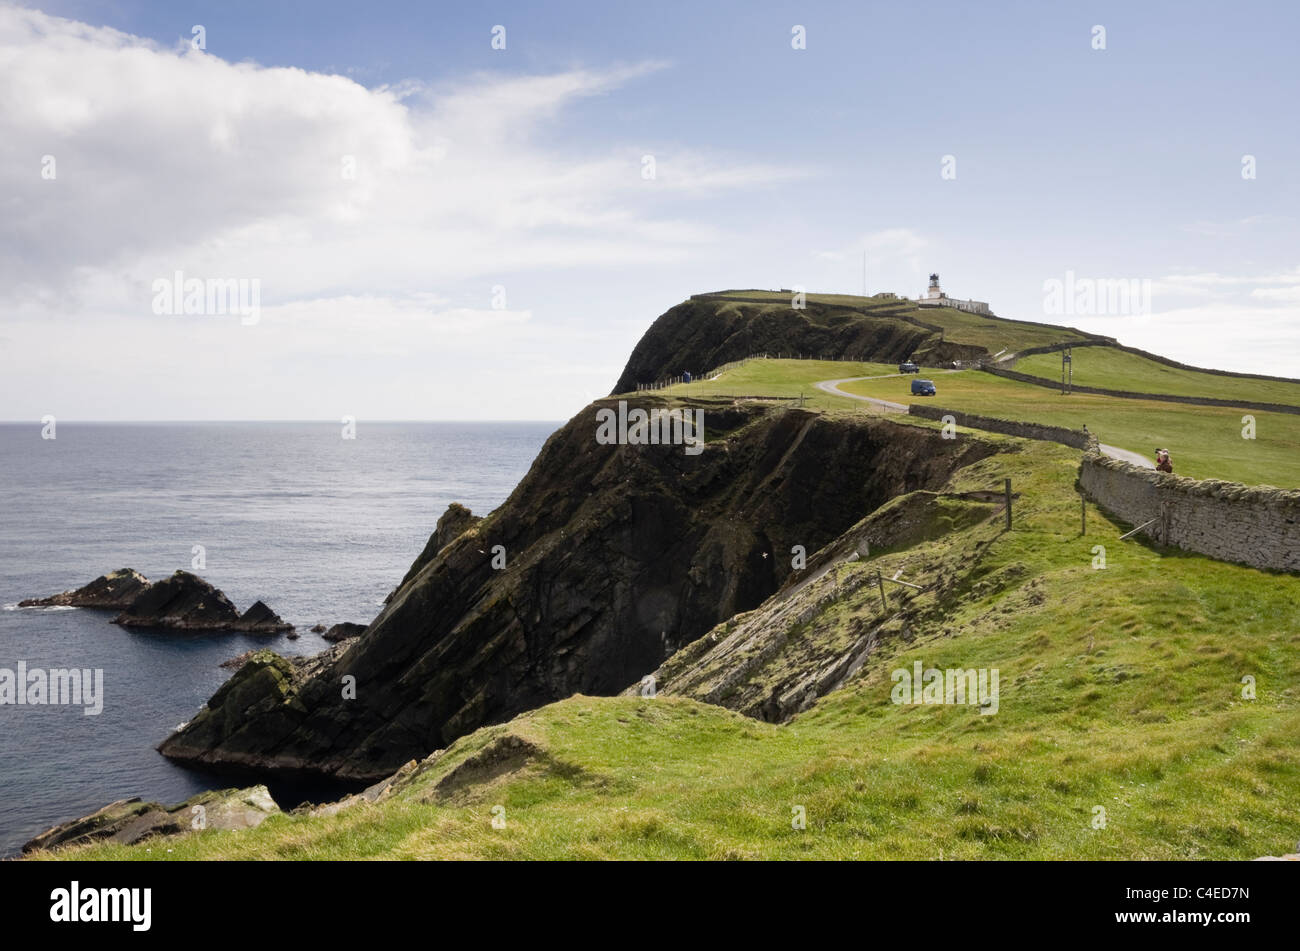 Sumburgh Head, Shetland Islands, Scotland, UK. View to RSPB nature reserve for seabirds breeding on sea cliffs with - Stock Image